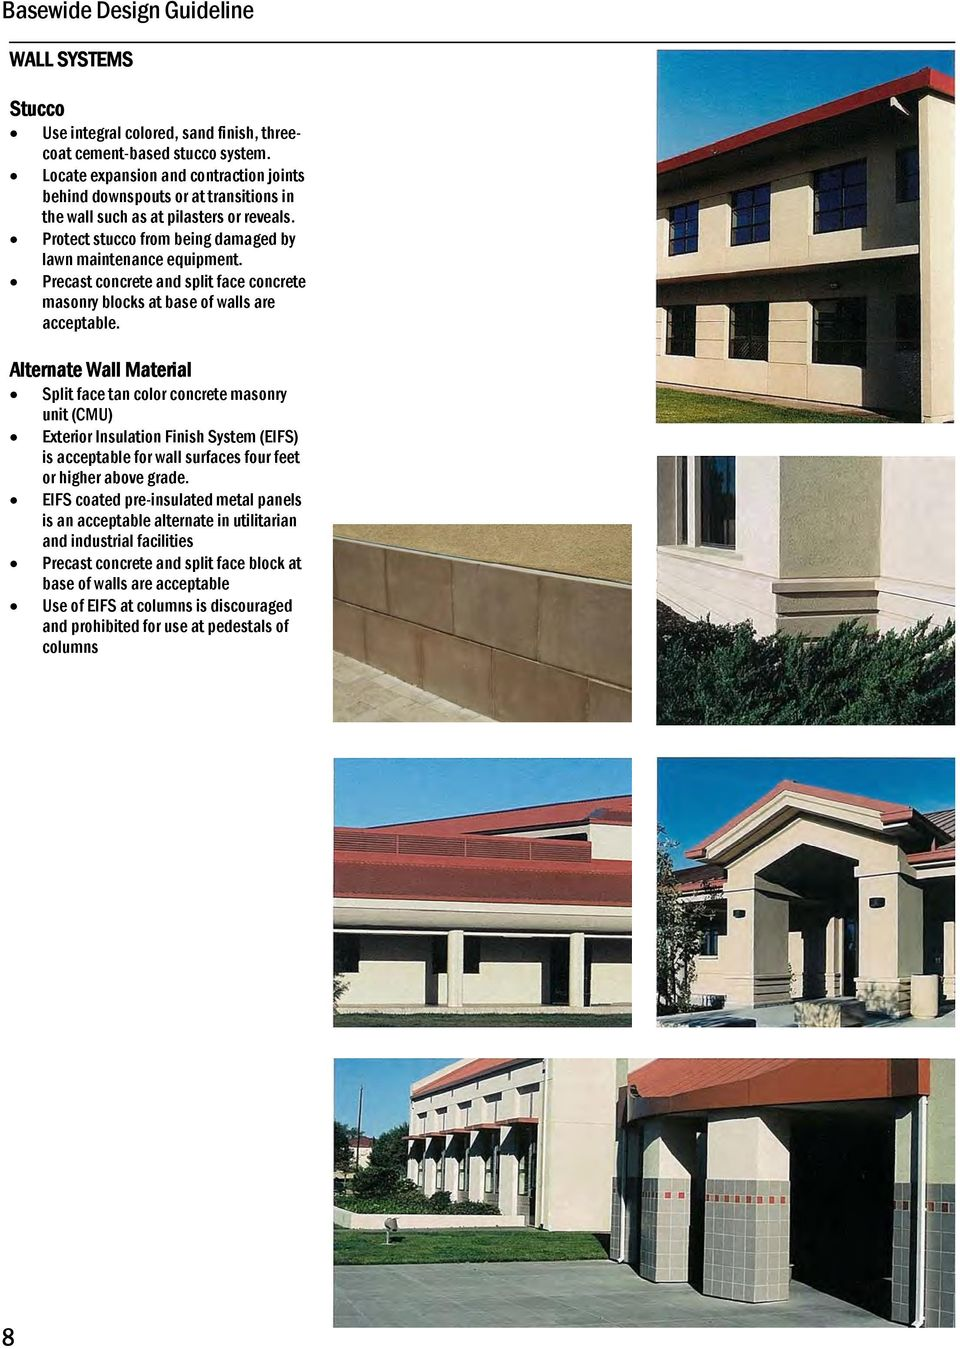 Precast concrete and split face concrete masonry blocks at base of walls are acceptable.